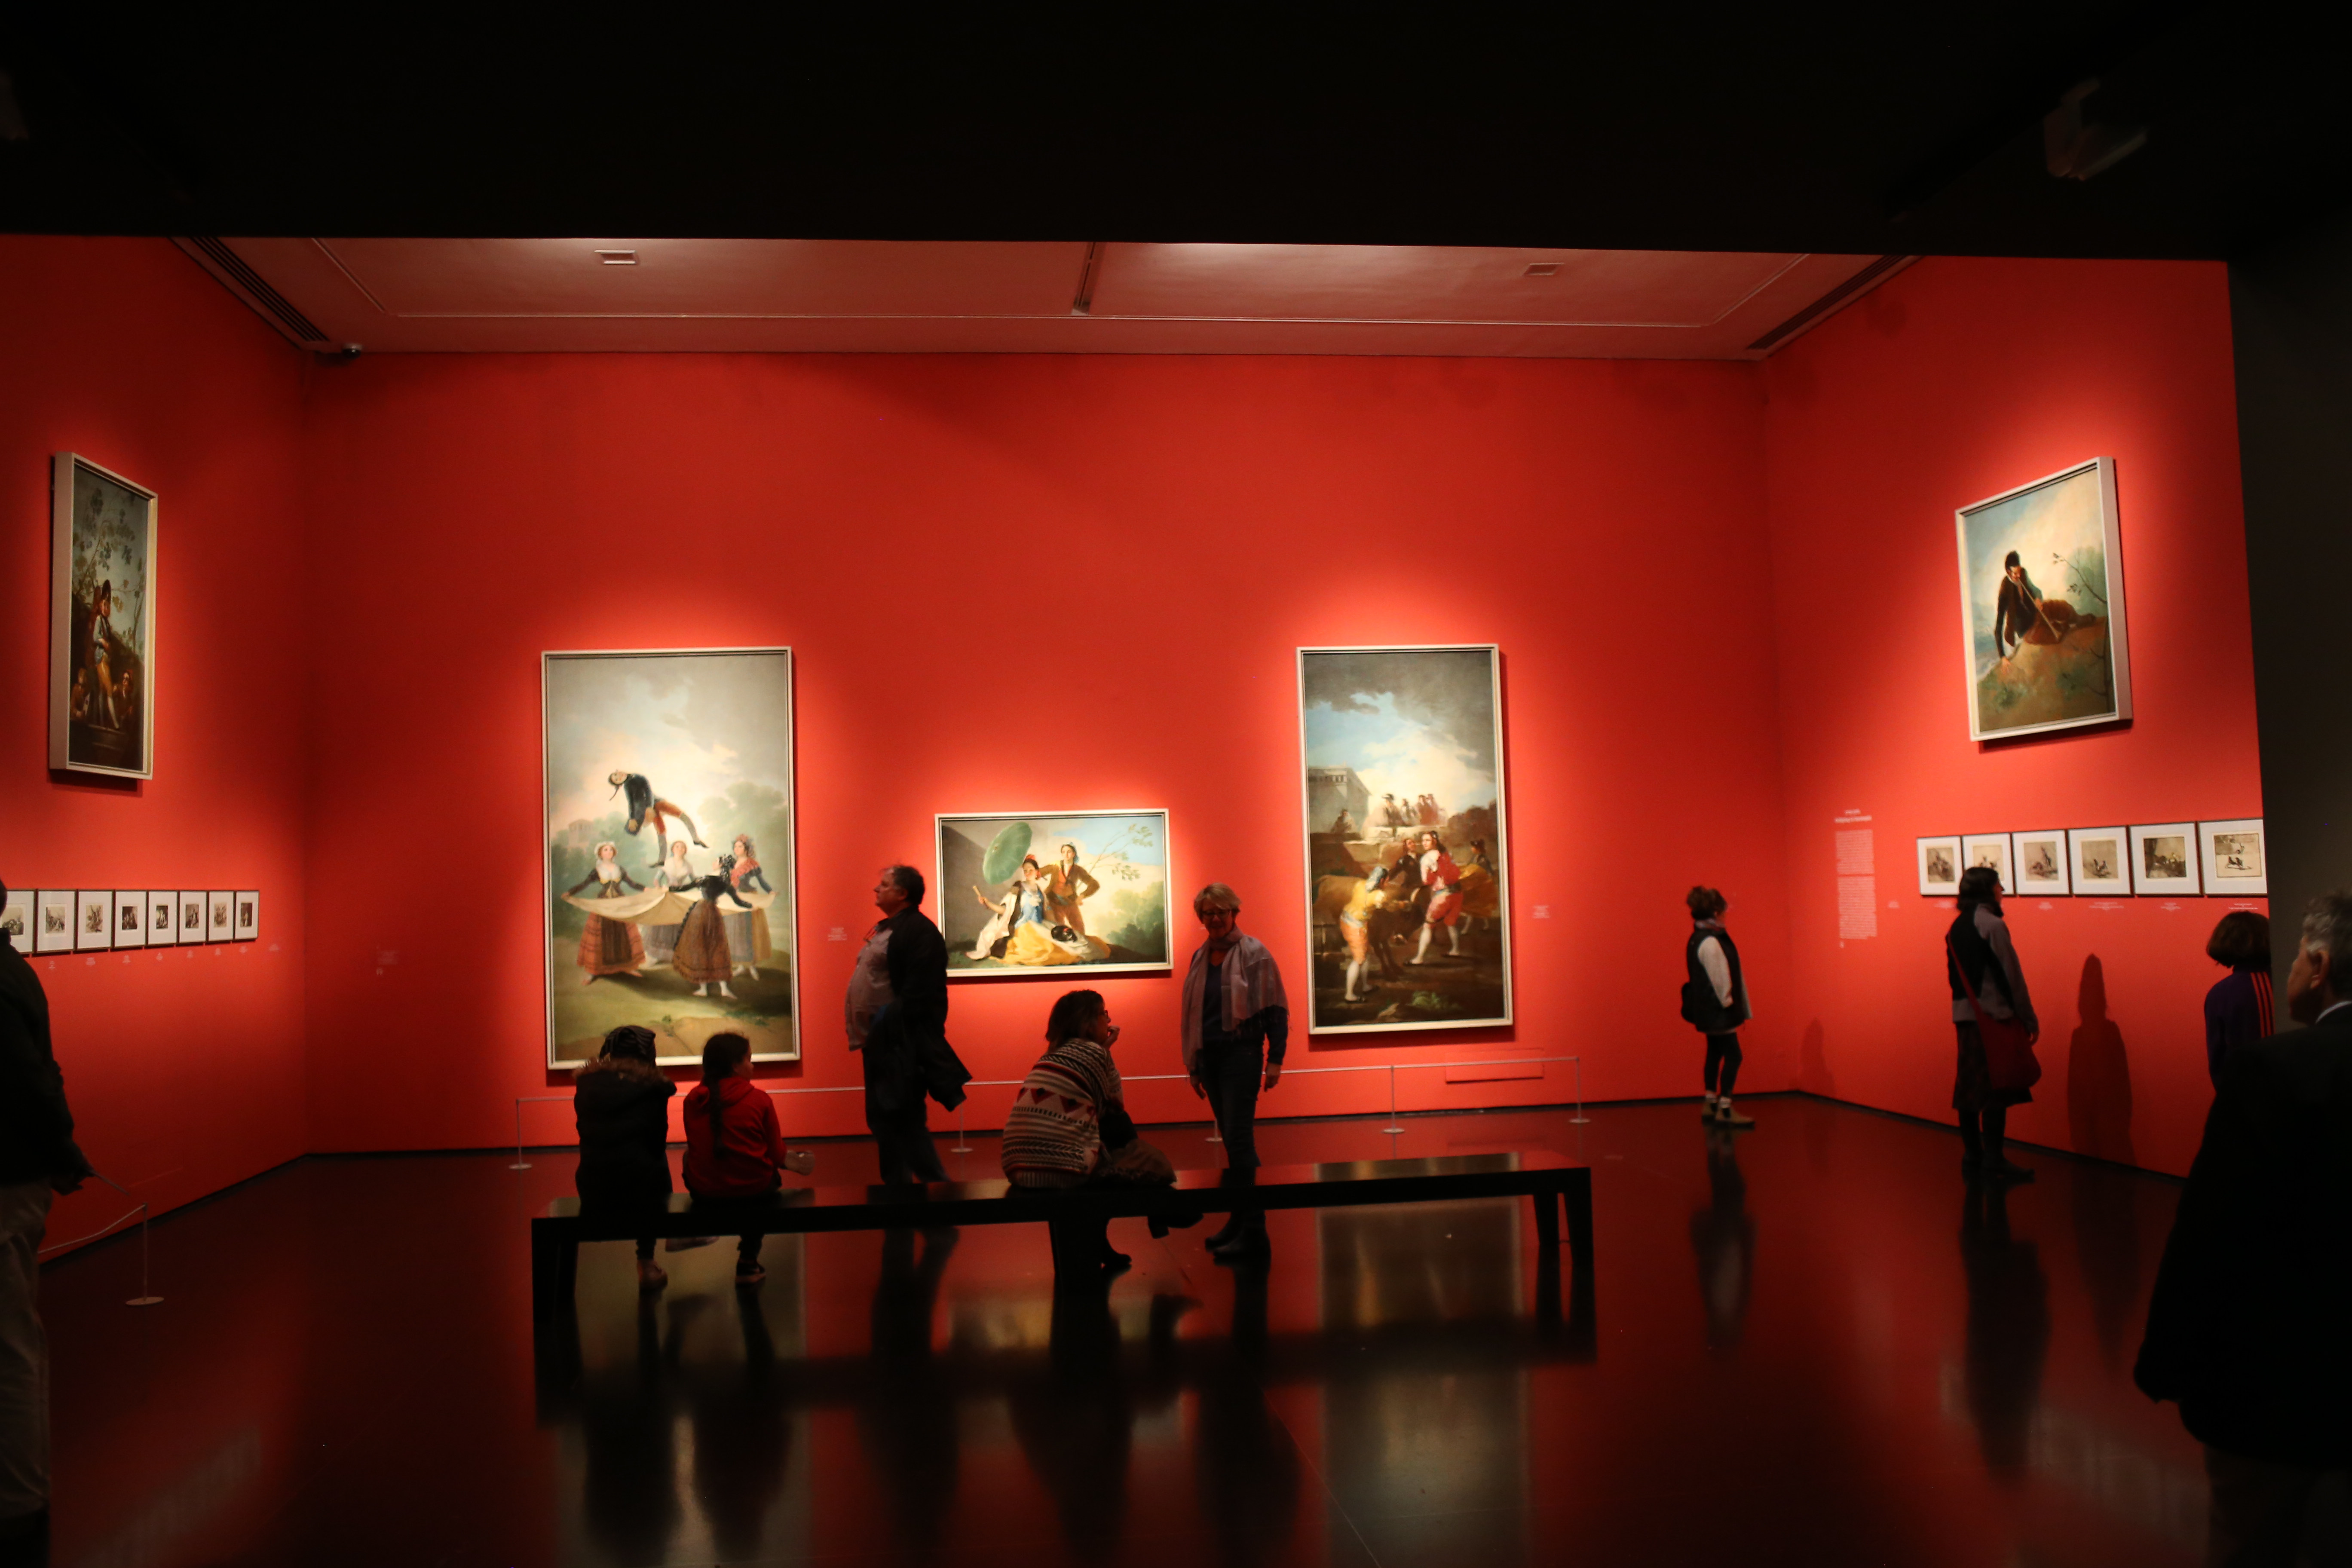 Francisco Goya: Daydreams and Nightmares, Temporary Exhibition, till April 18, 2017, The Israel Museum, Jerusalem